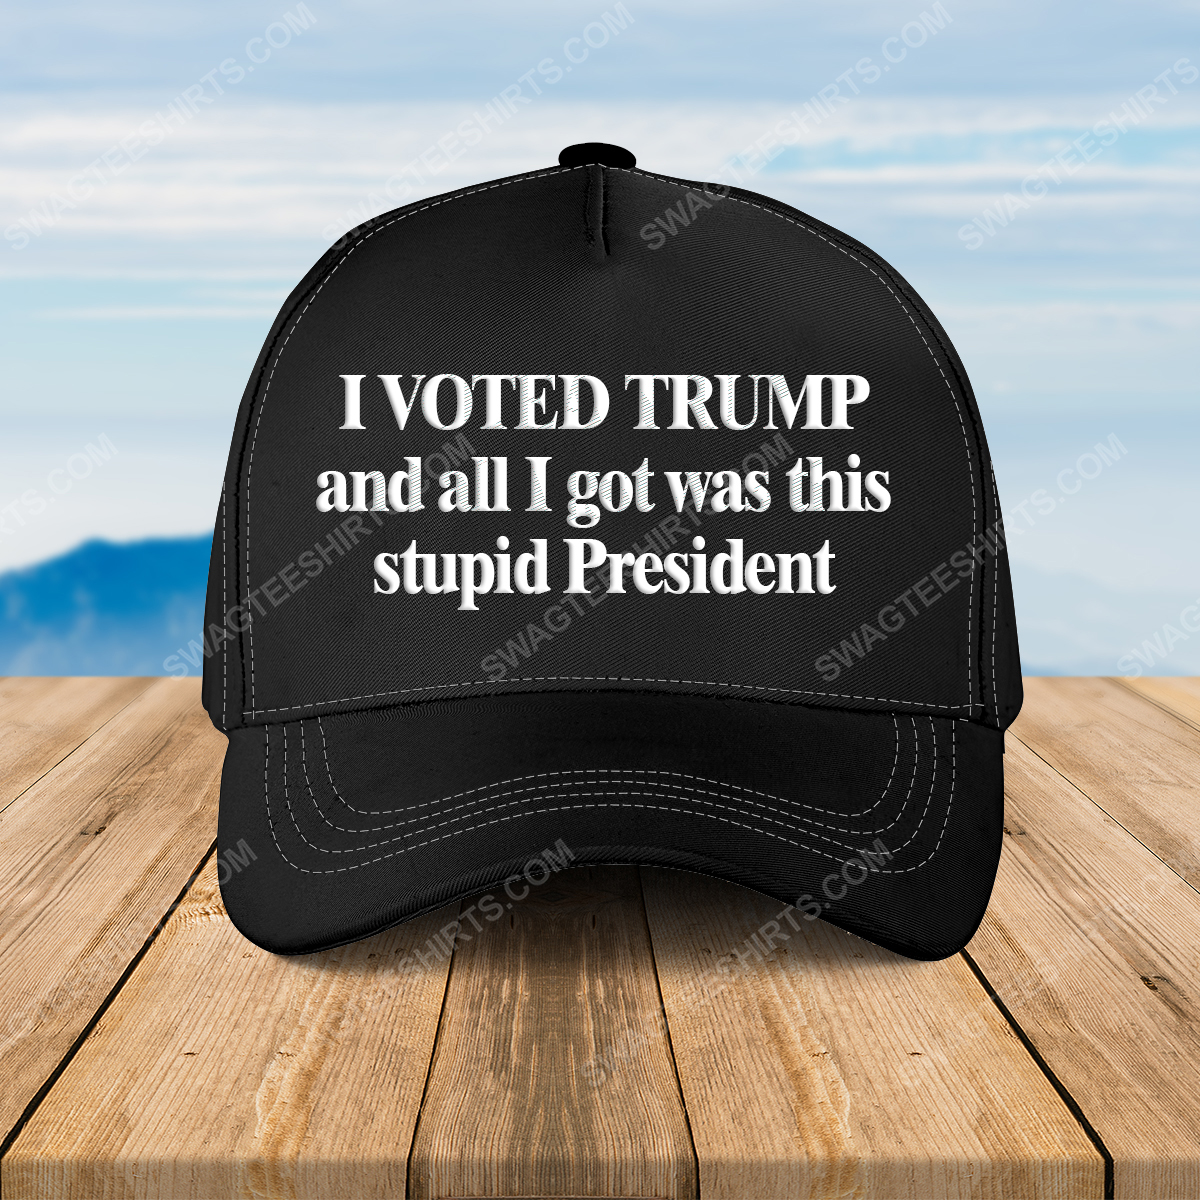 I voted trump and all i got was this stupid president full print classic hat 1 - Copy (3)